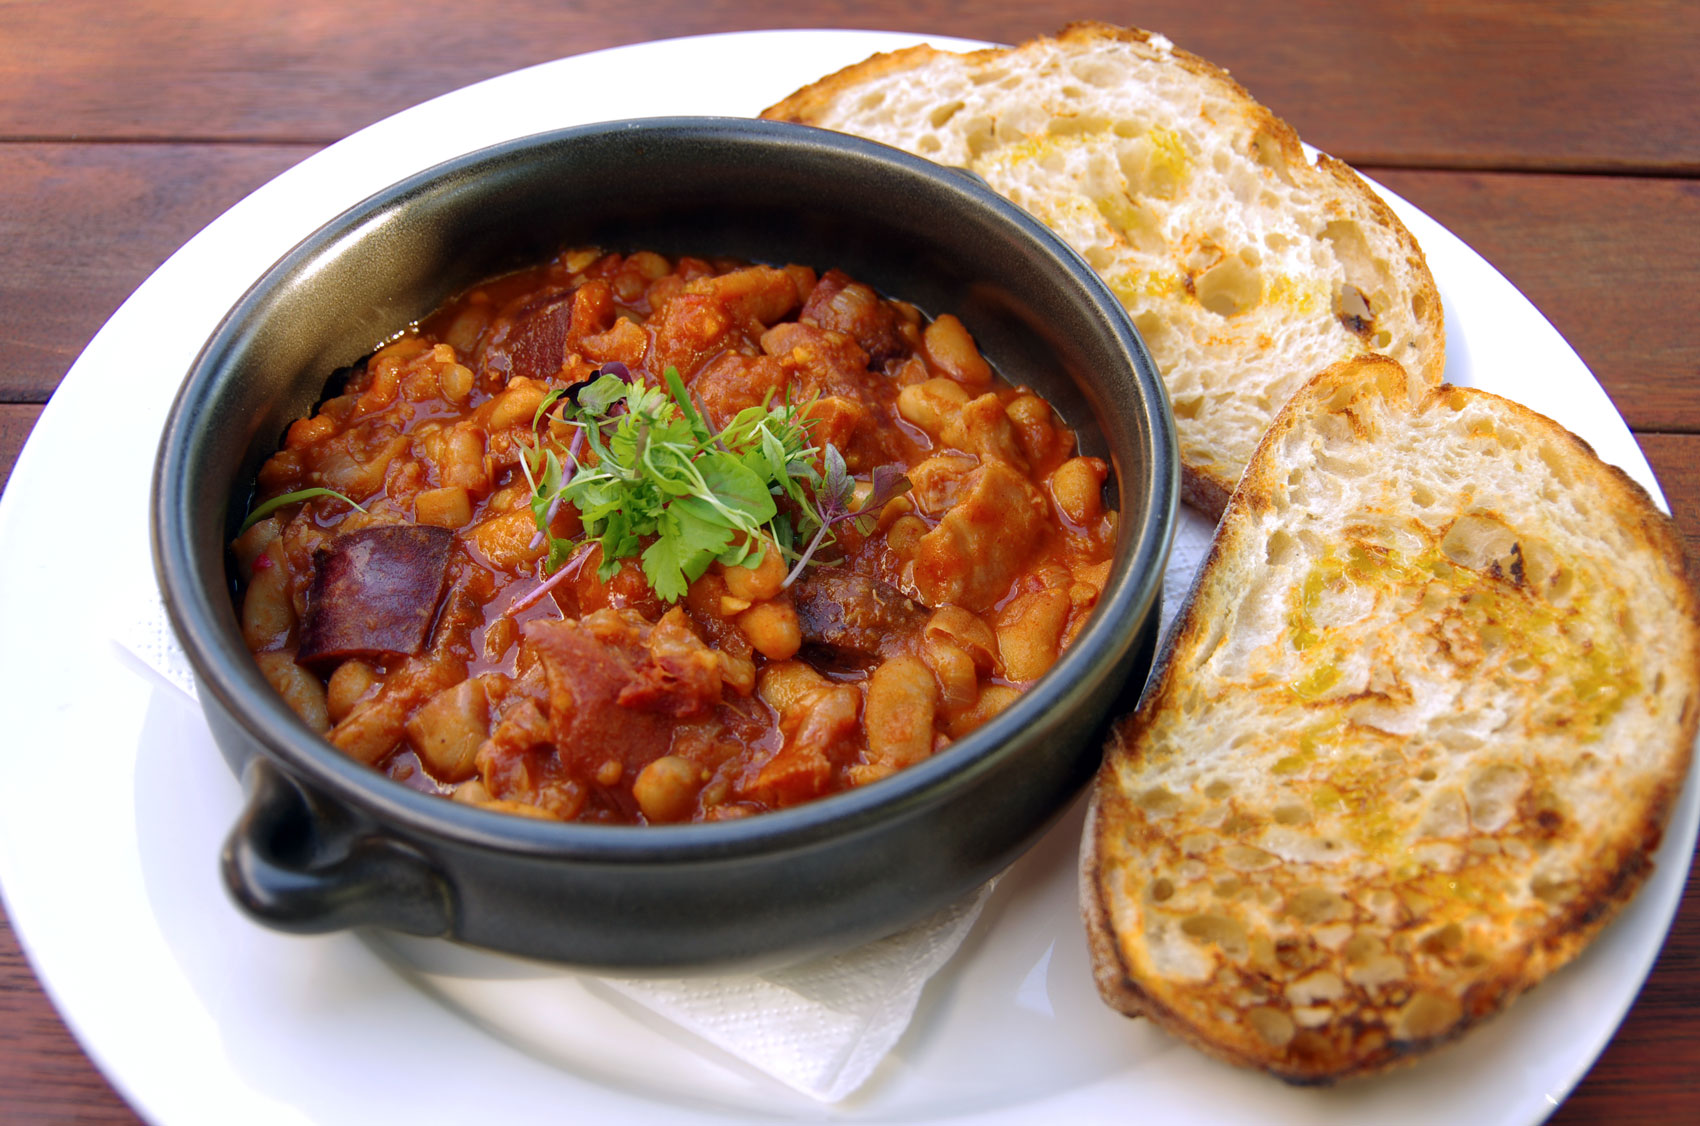 A black bowl filled with spicy New Orleans red beans and rice with a side of toasted bread.